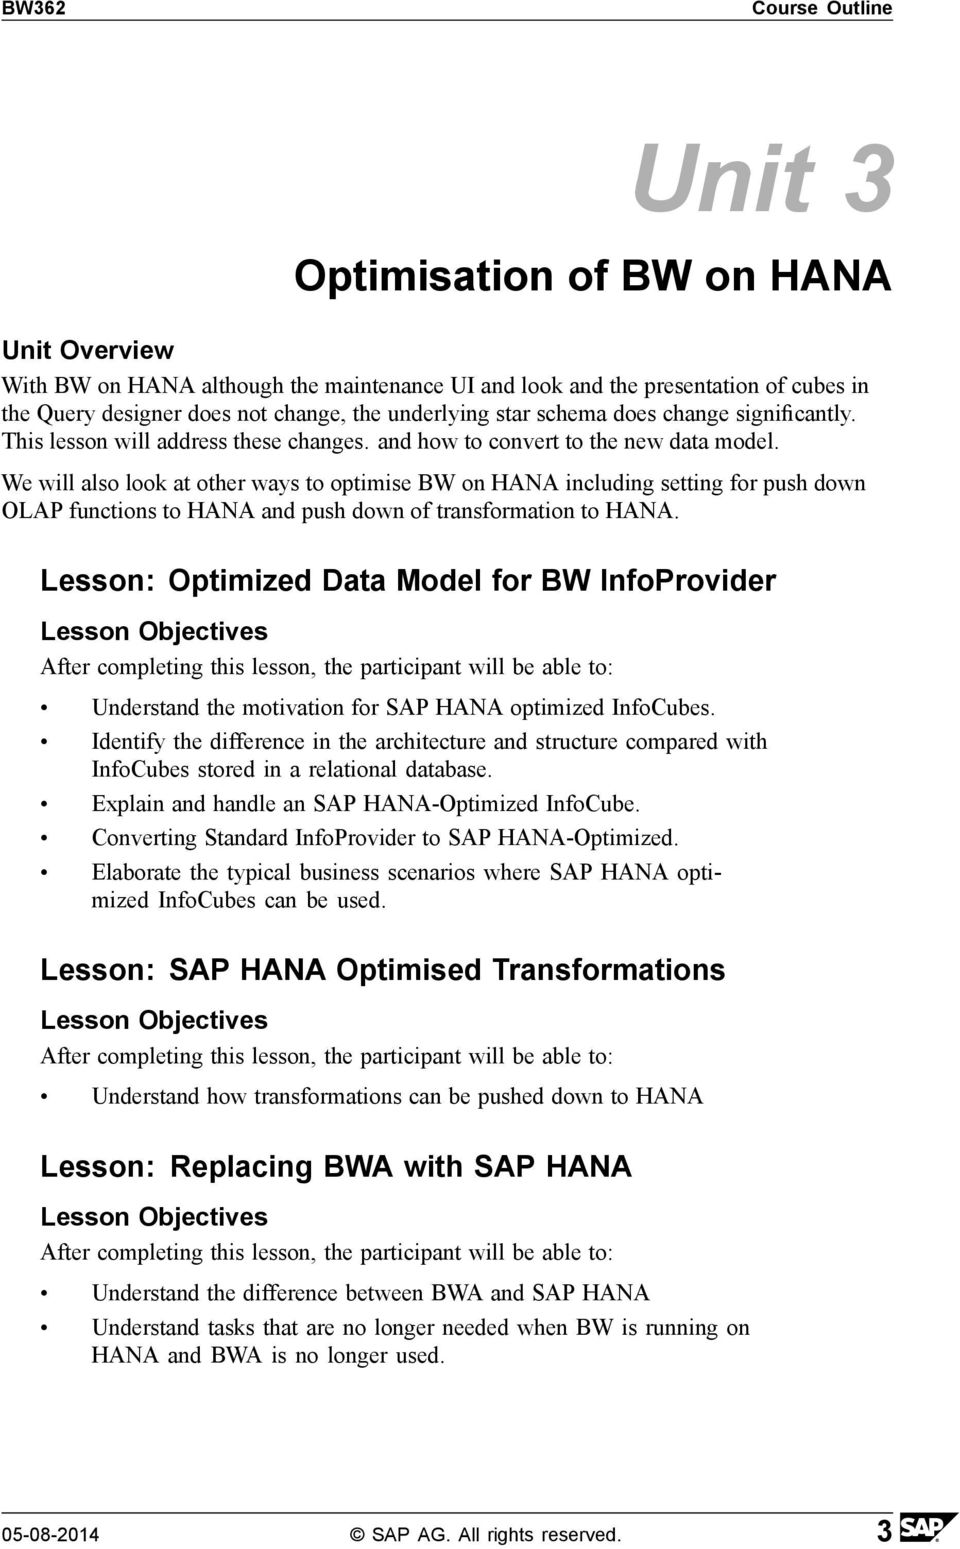 We will also look at other ways to optimise BW on HANA including setting for push down OLAP functions to HANA and push down of transformation to HANA.